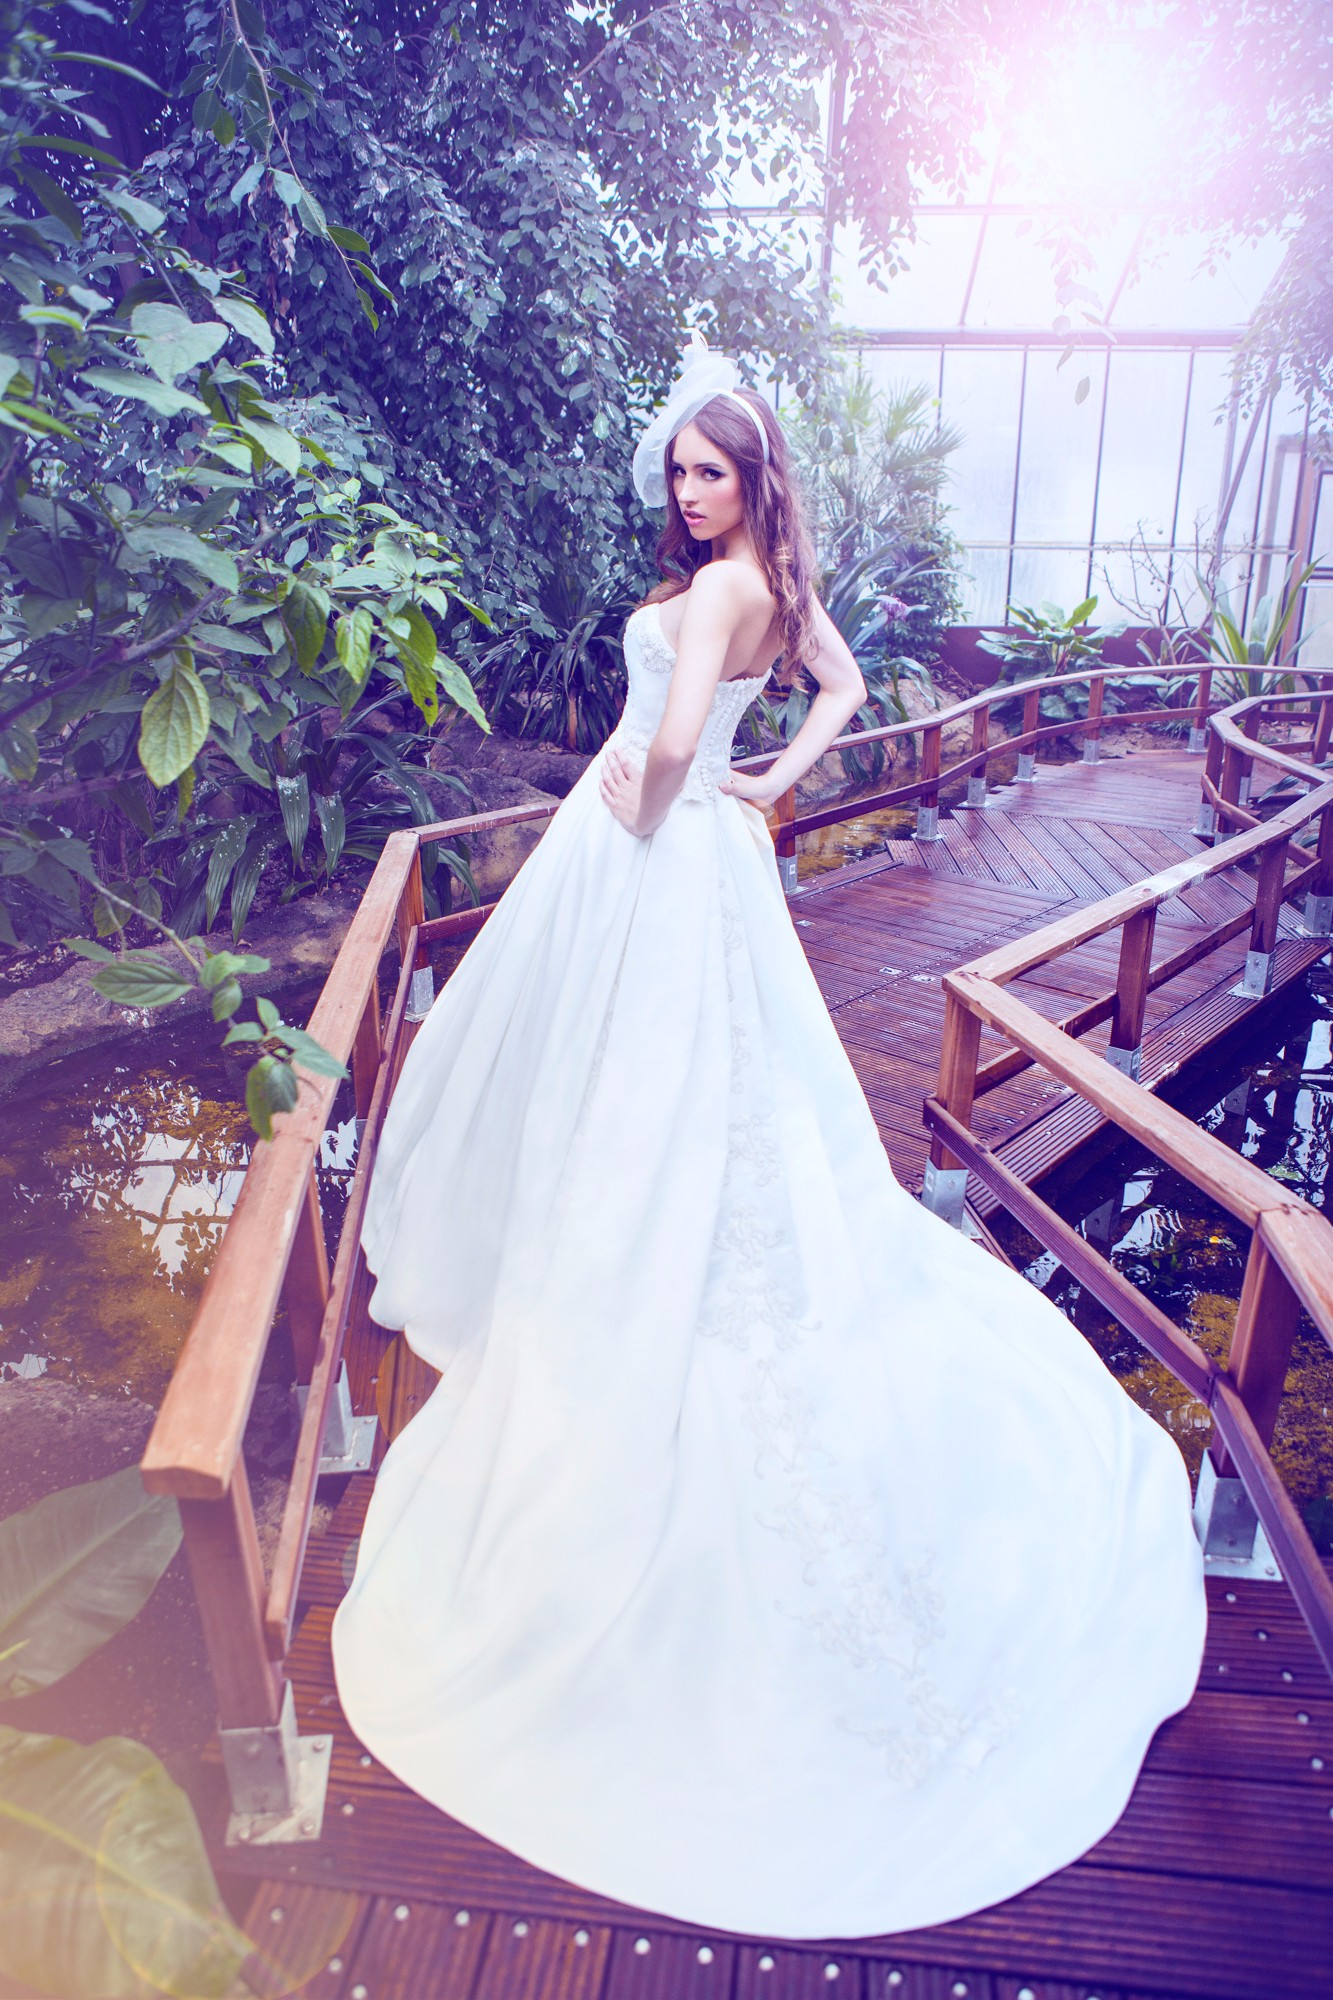 Blooming Brides 7 - William Setiawan-williamsetiawan